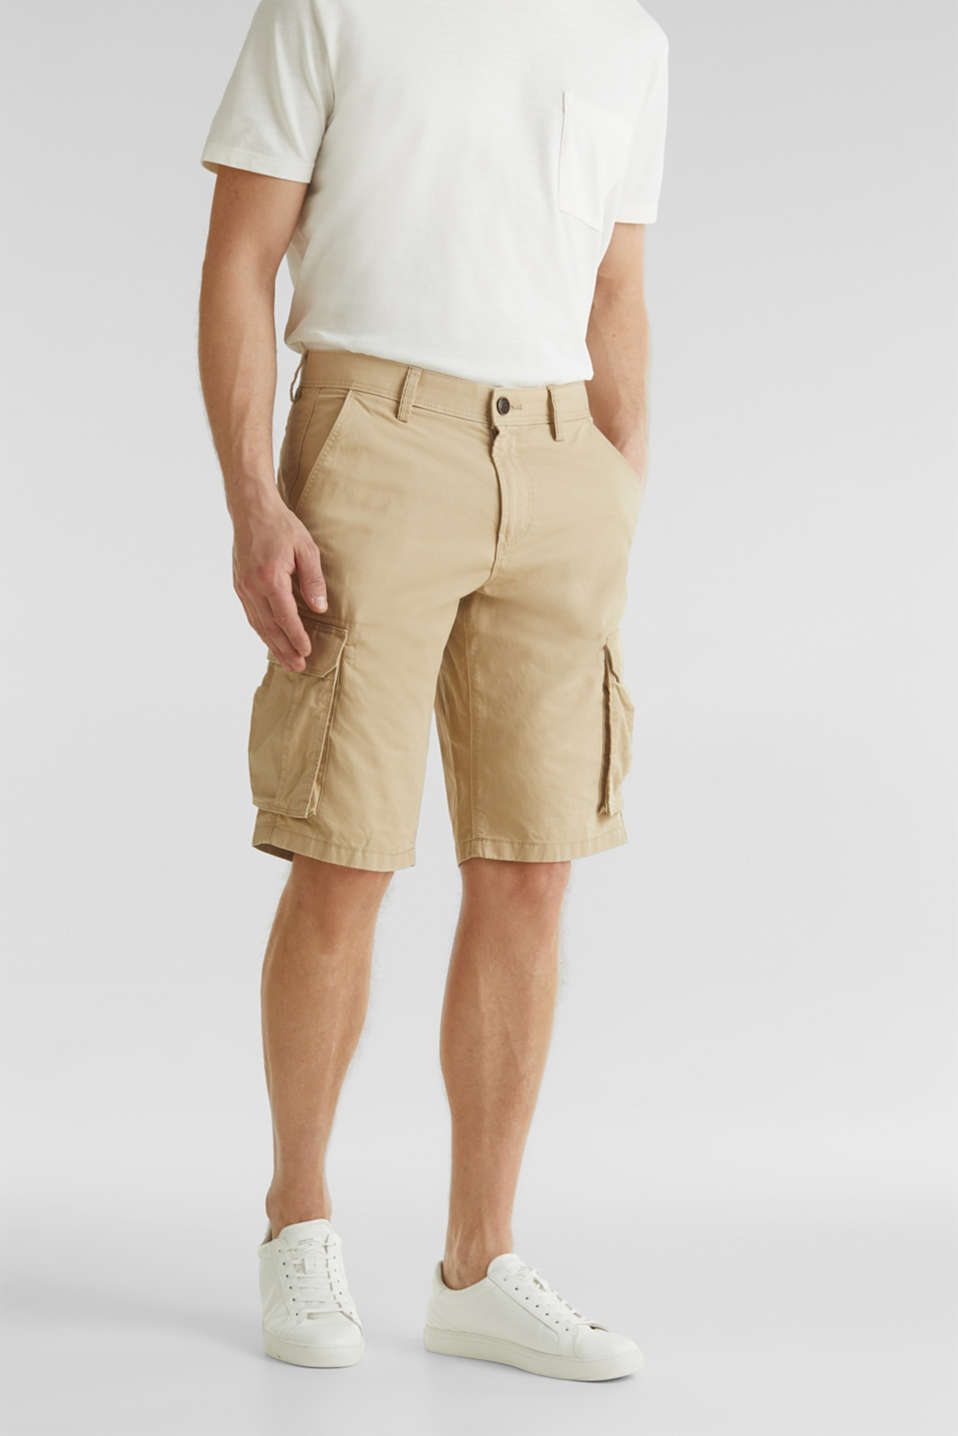 Esprit - Cargo shorts made of 100% cotton